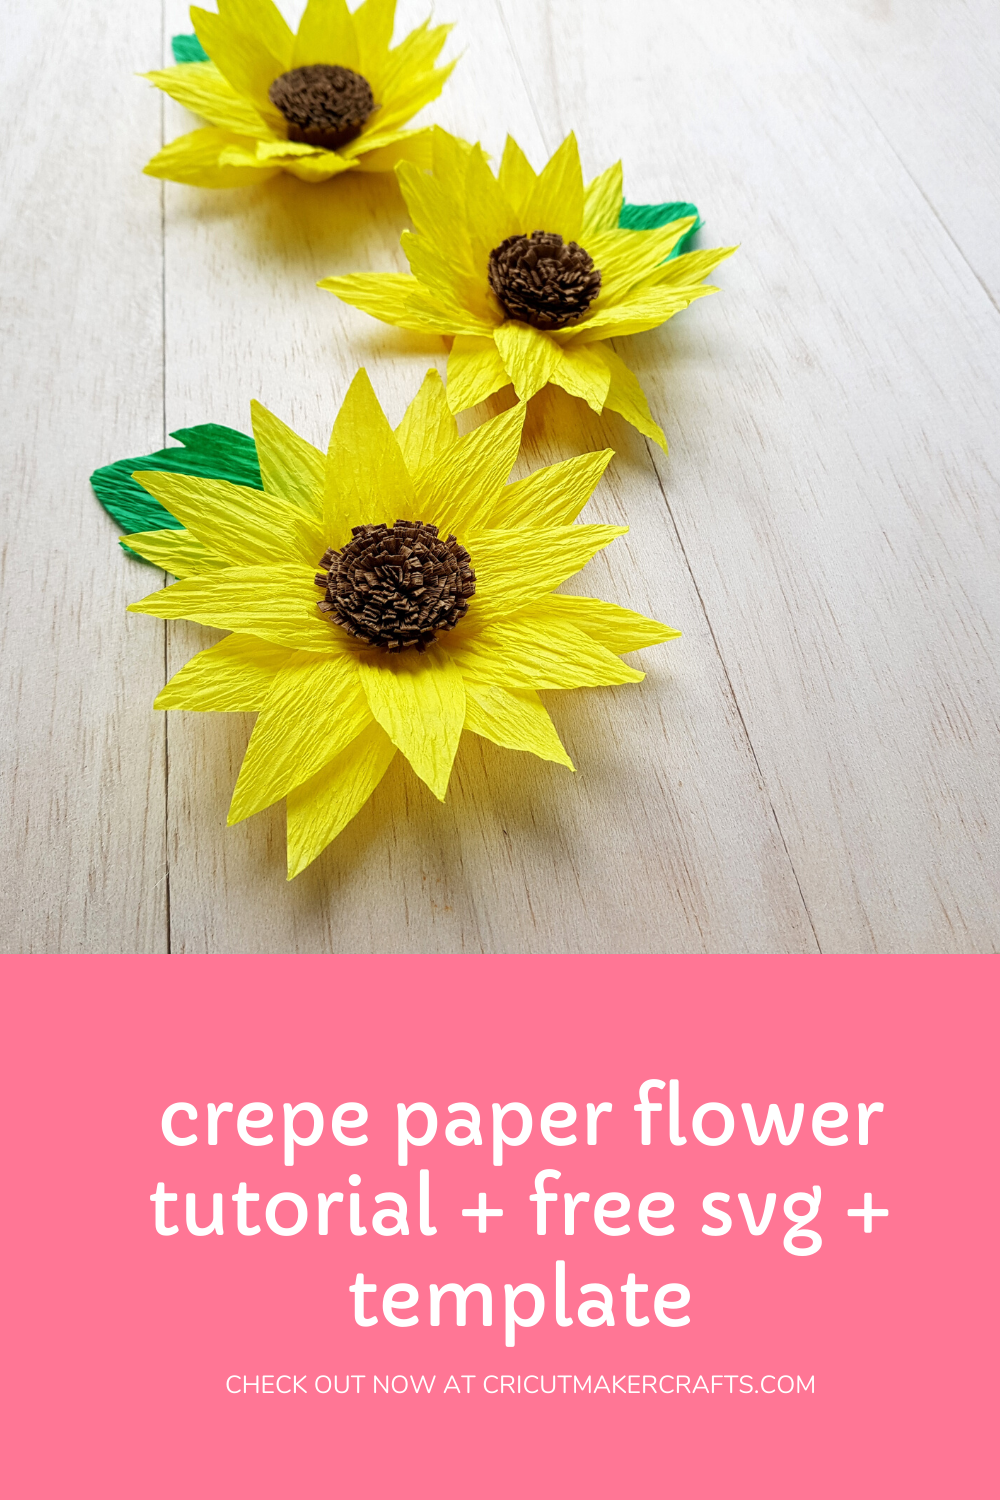 crepe paper sunflower